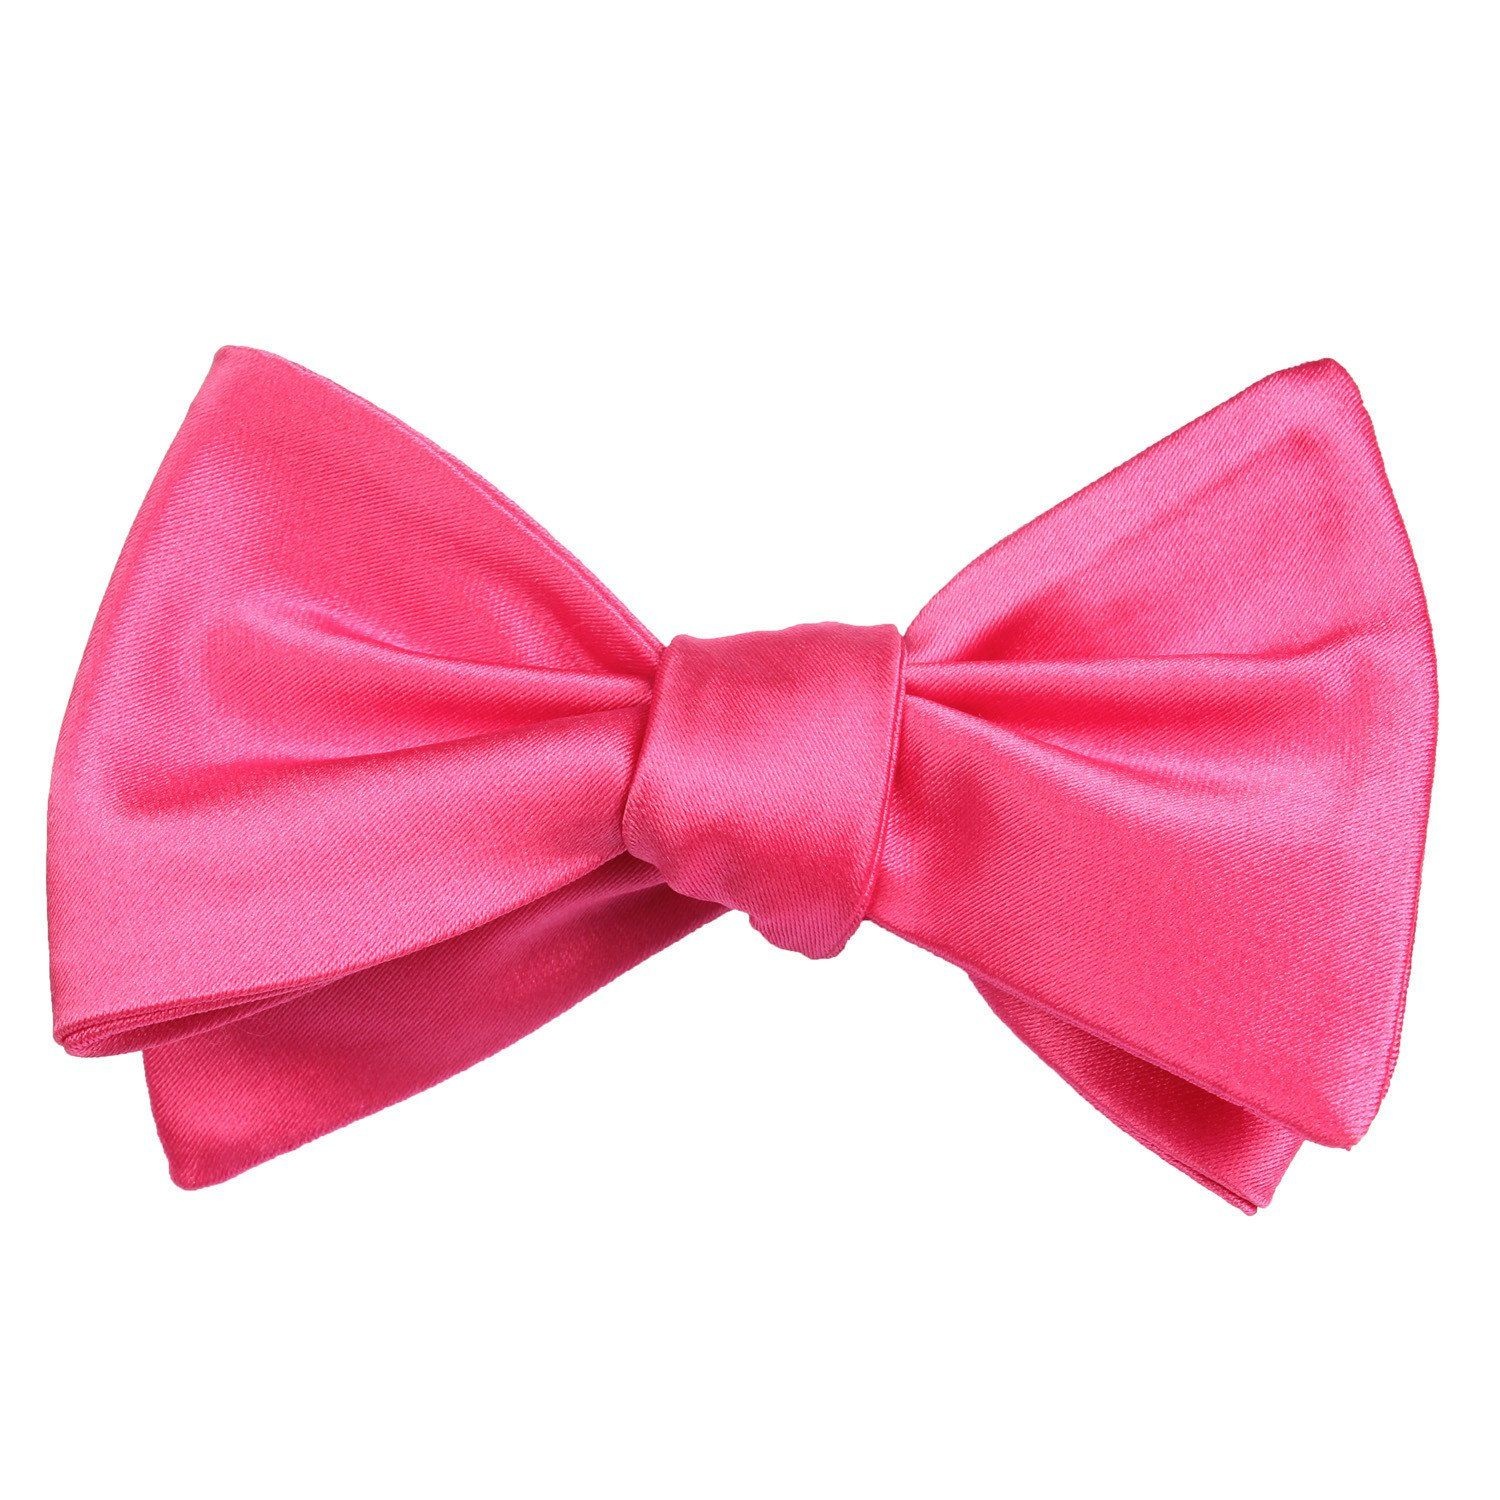 New Men/'s Sequins Red Pre-Tied Bowtie for Formal Occasions